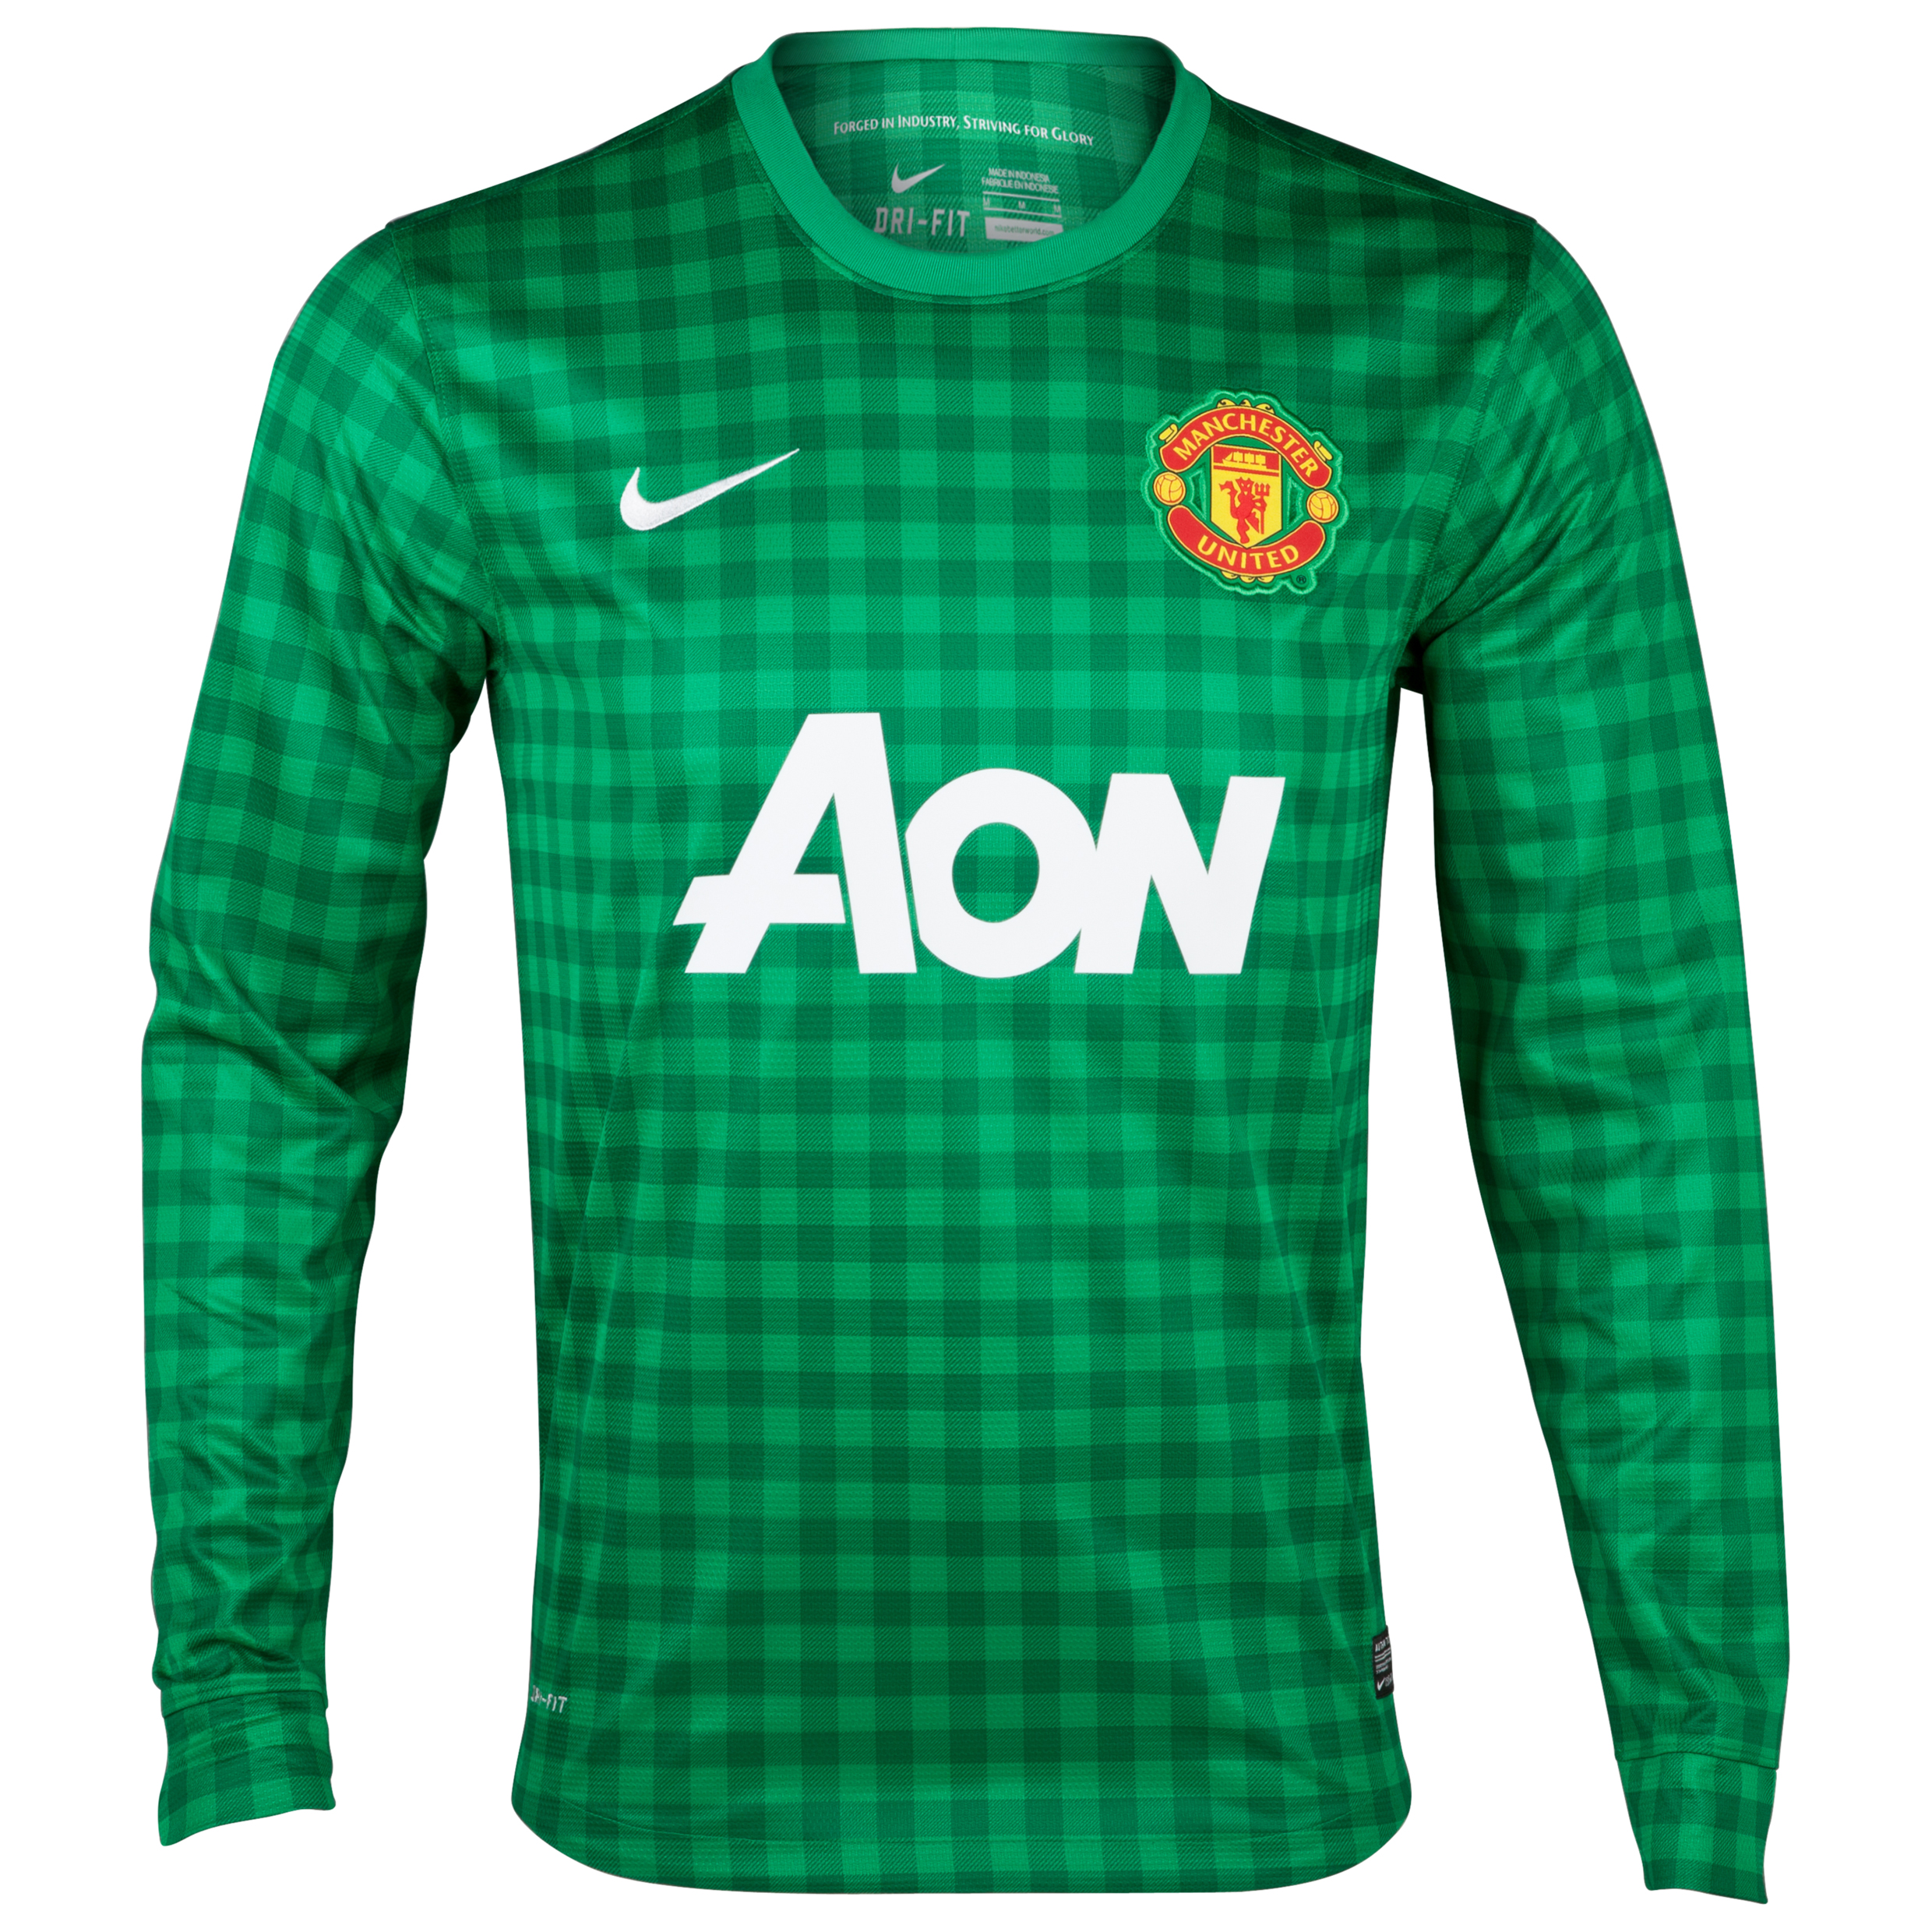 Manchester United Home Goalkeeper Shirt 2012/13 - Youths